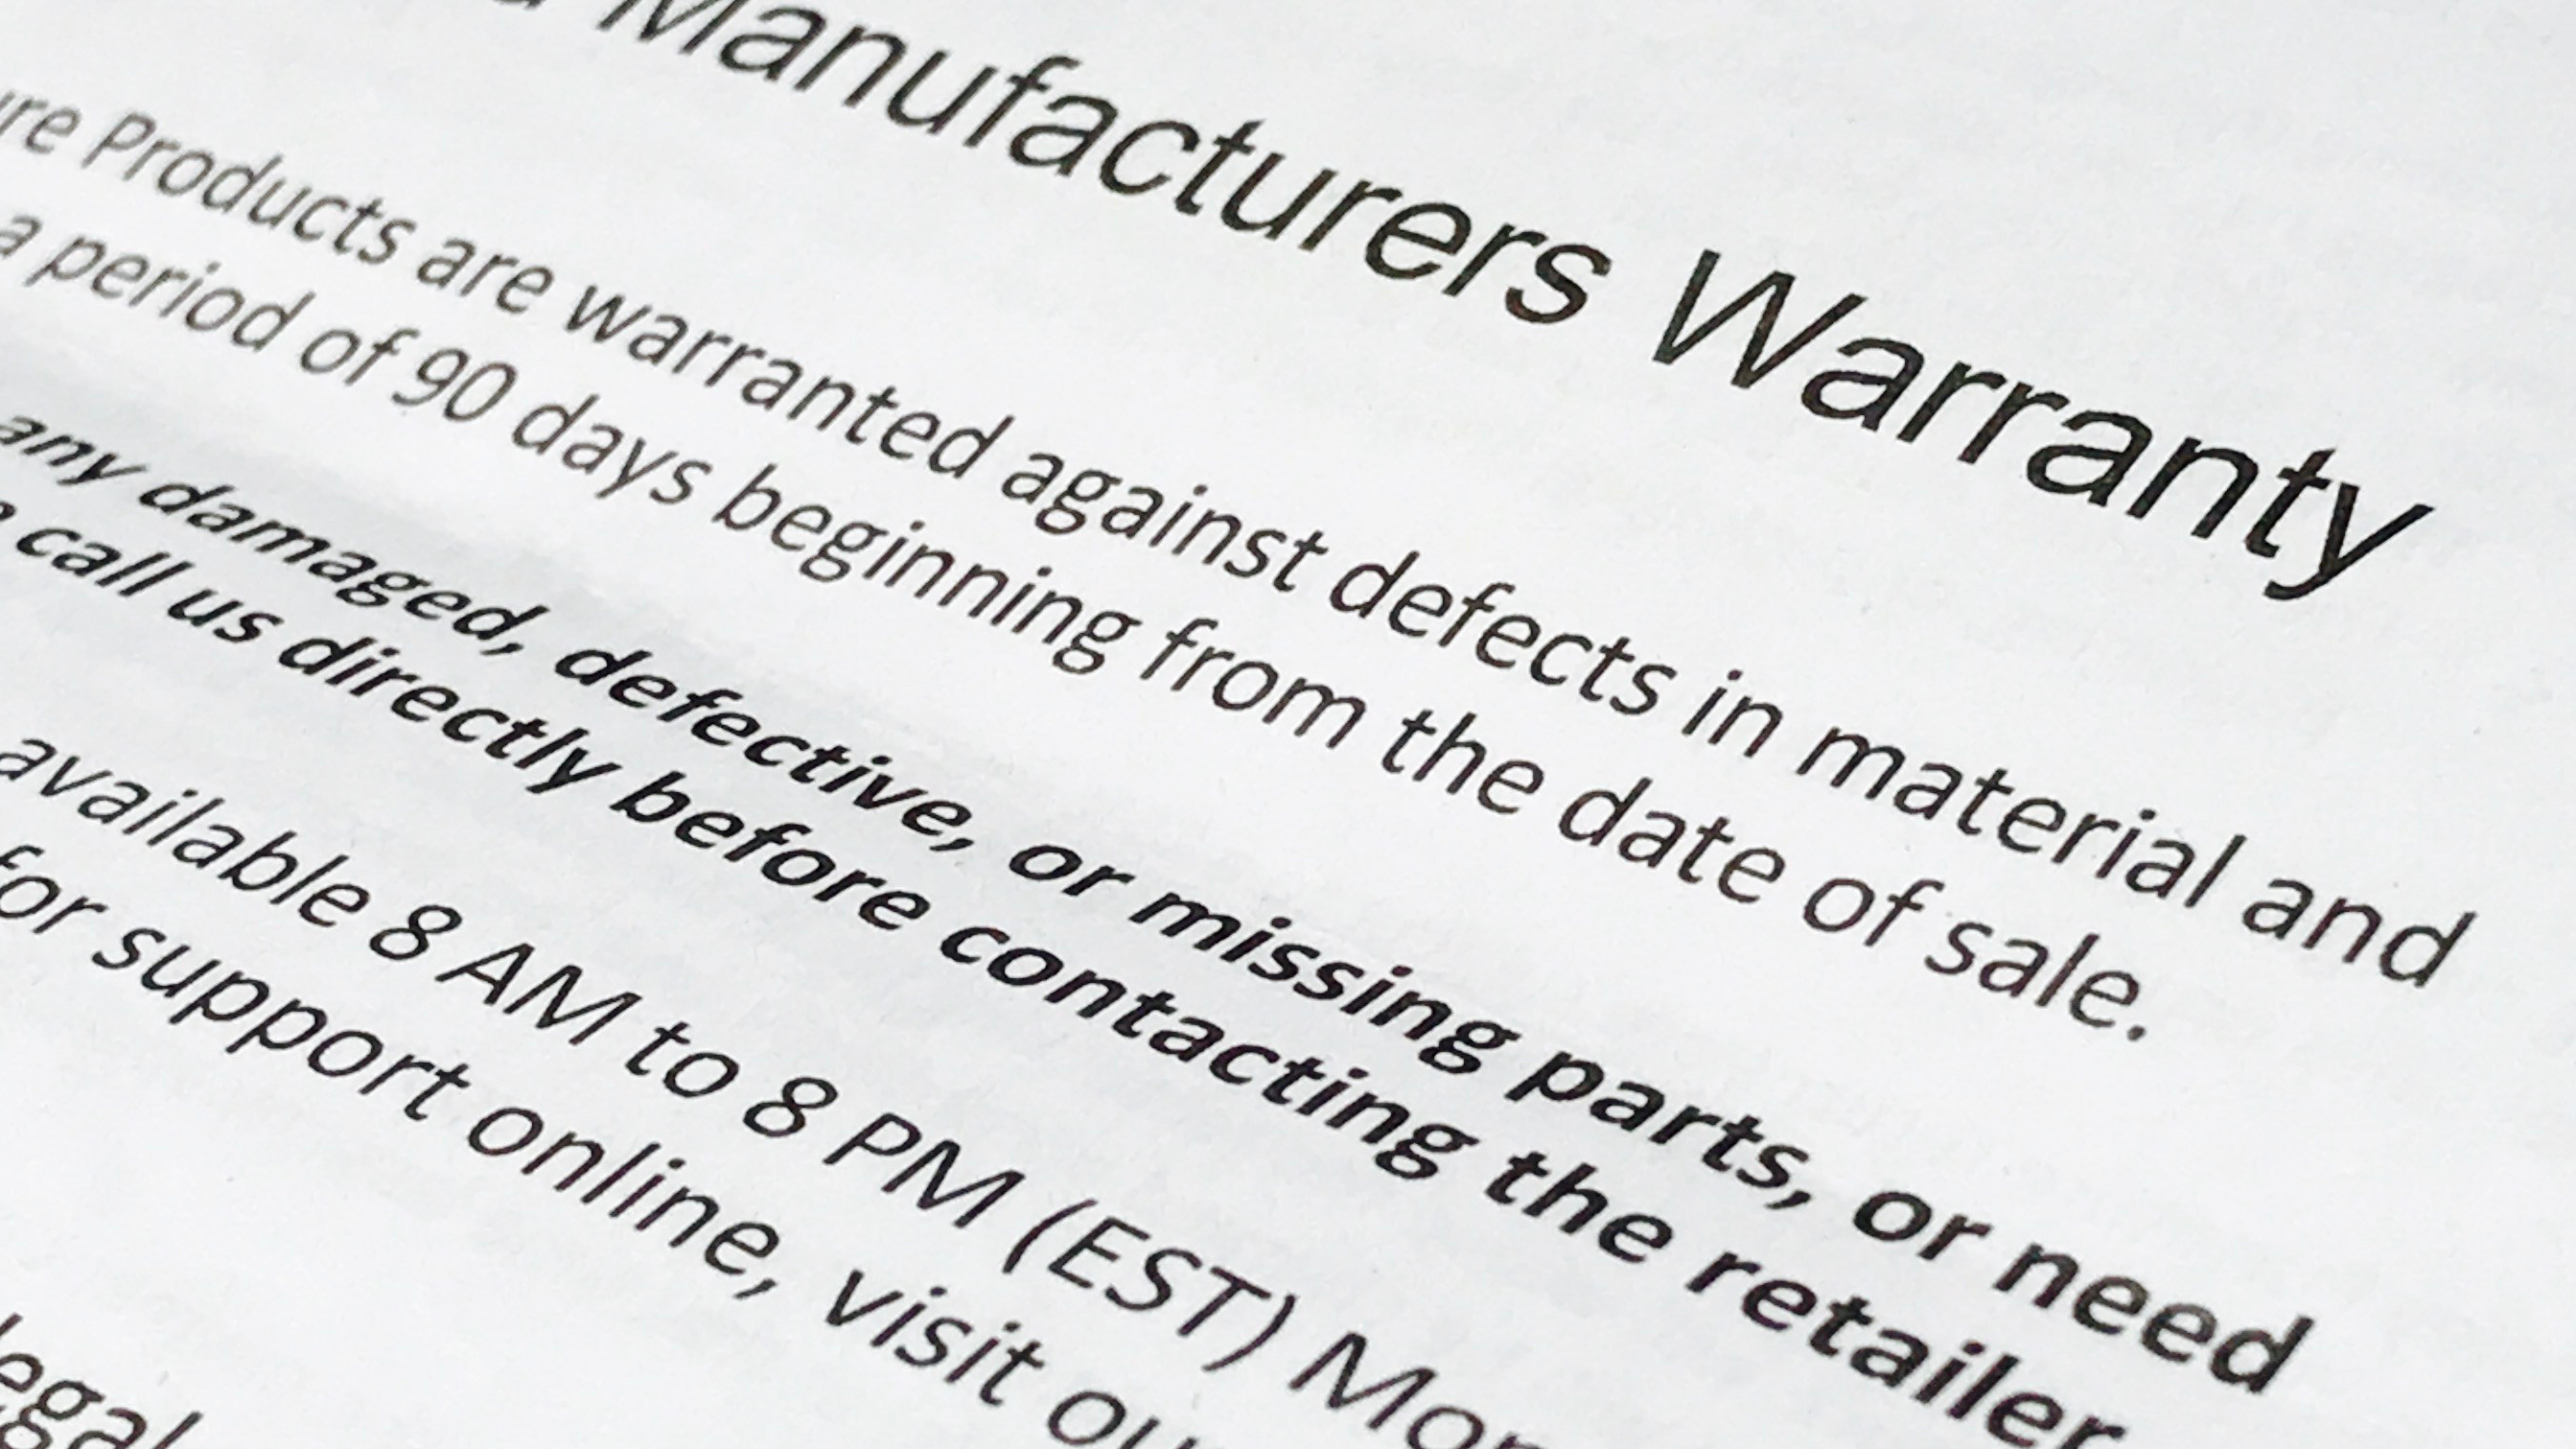 Internet of Warranty could be the next big disruption!